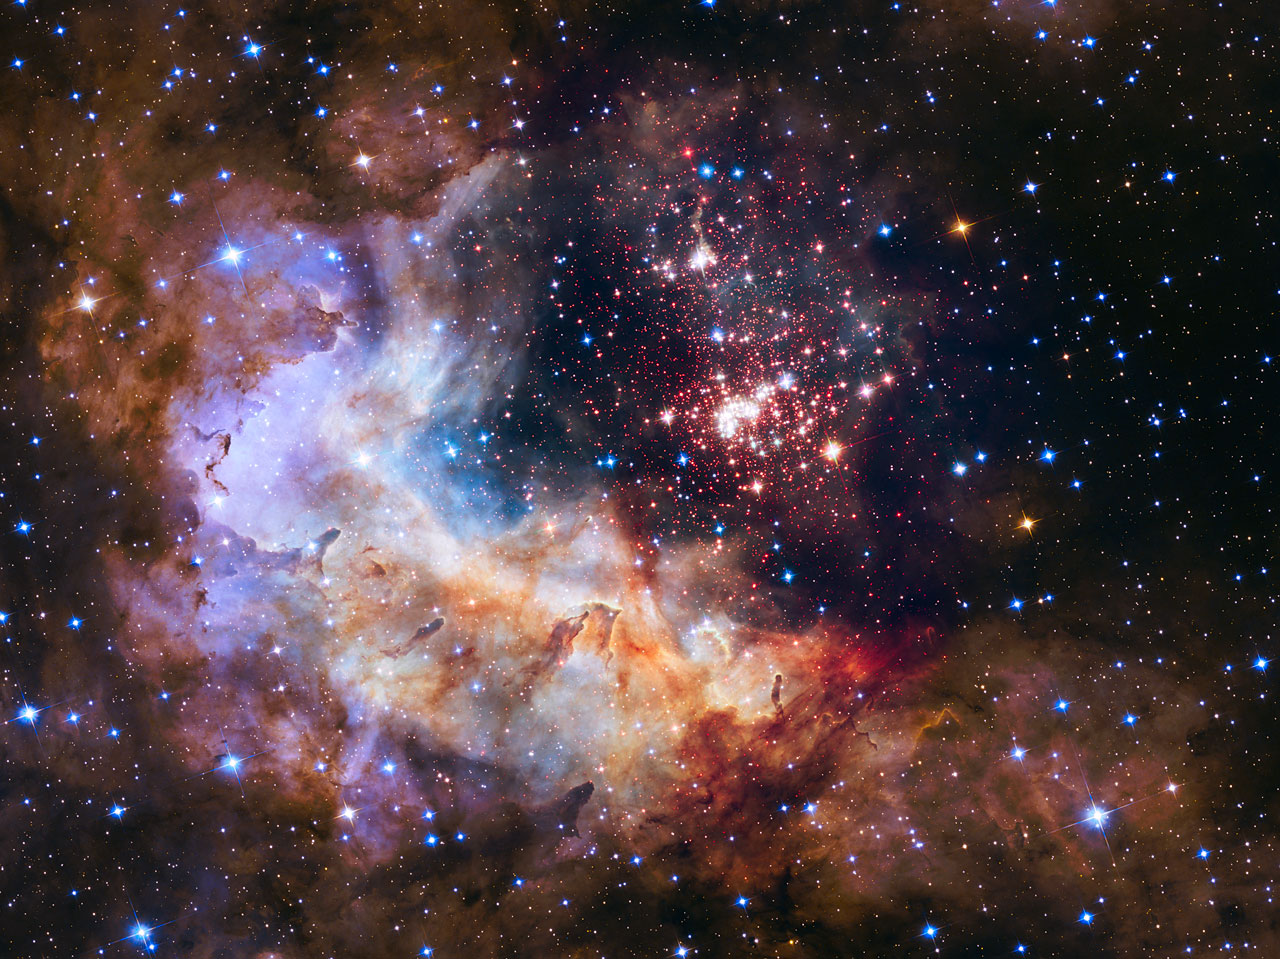 hubble 25th anniversary image